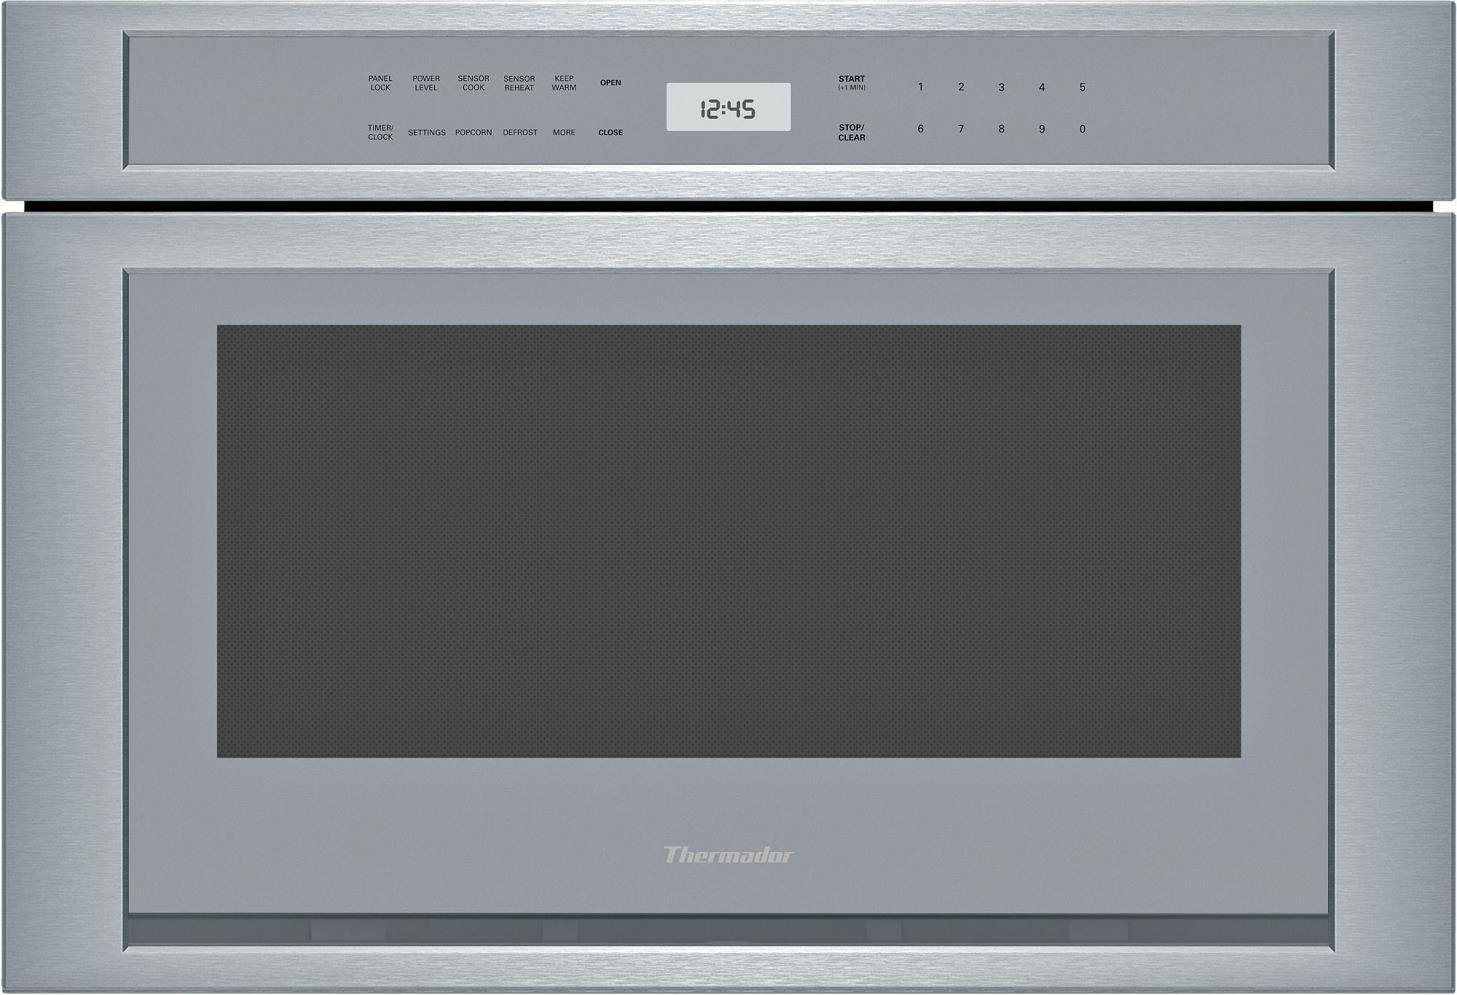 Thermador Masterpiece Series MD30WS 30 Inch Built In Microwave - ALSurplus AL